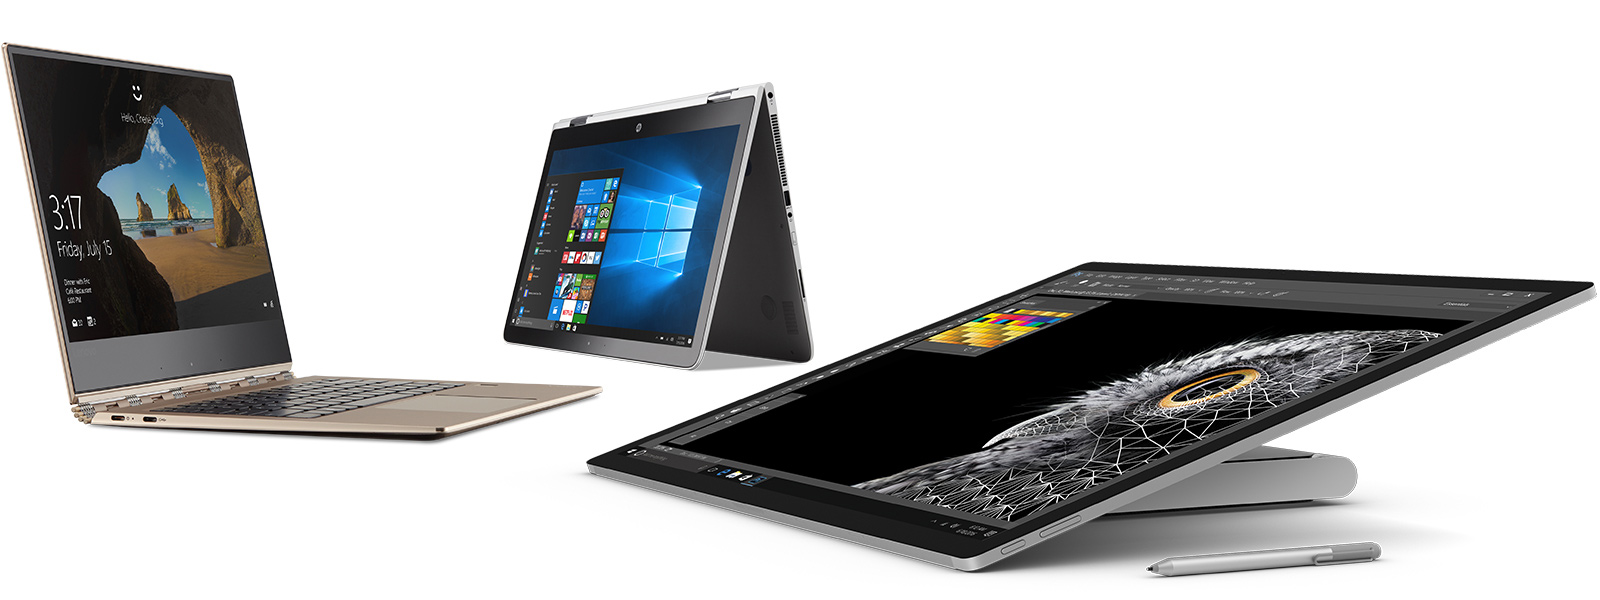 Group image HP Spectre, Lenovo Yoga, and Surface Studio.